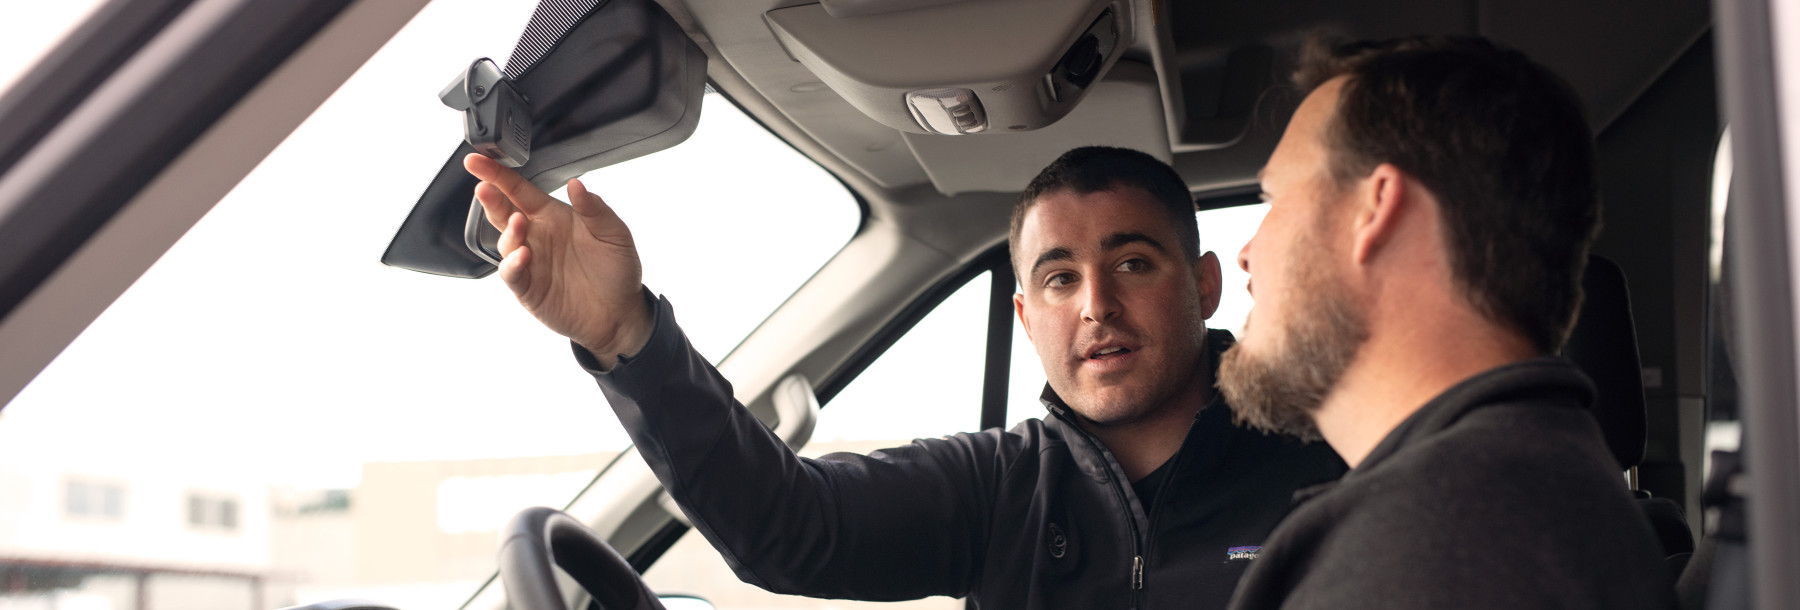 Camera Angles: Drivers and Managers Share Their Views on Dash Cams